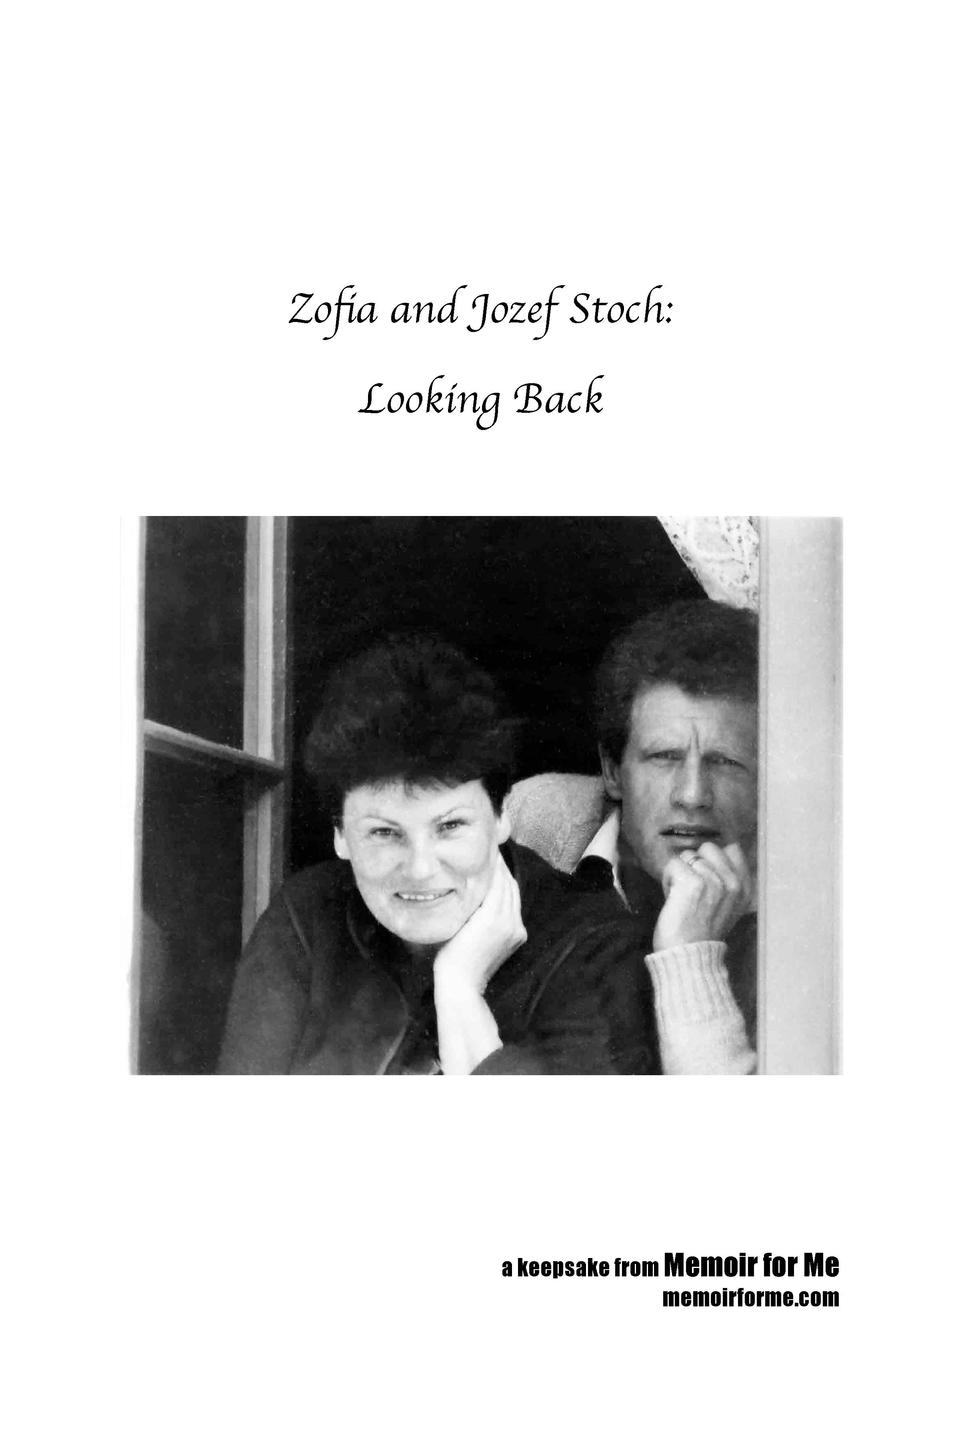 Zofia and Jozef Stoch  Looking Back  a keepsake from Memoir for Me memoirforme.com